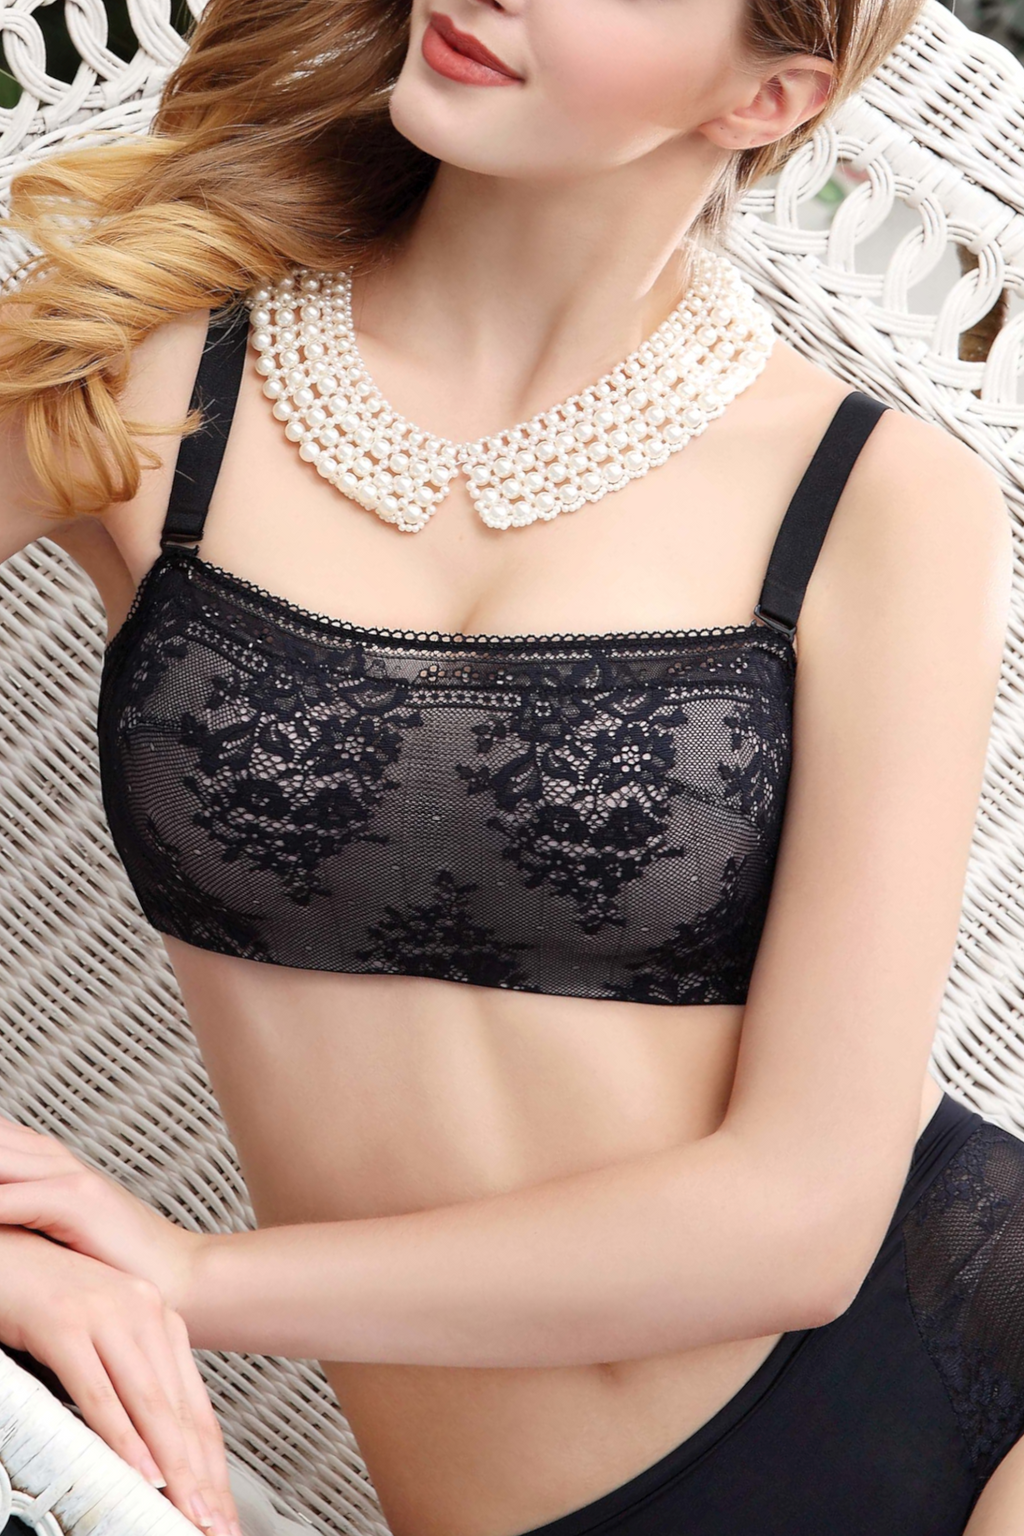 Push Up Cami Lace Bralette for Women - Underwired Padded Bandeau Bra Tube Top with Crystal Embellishment #11311